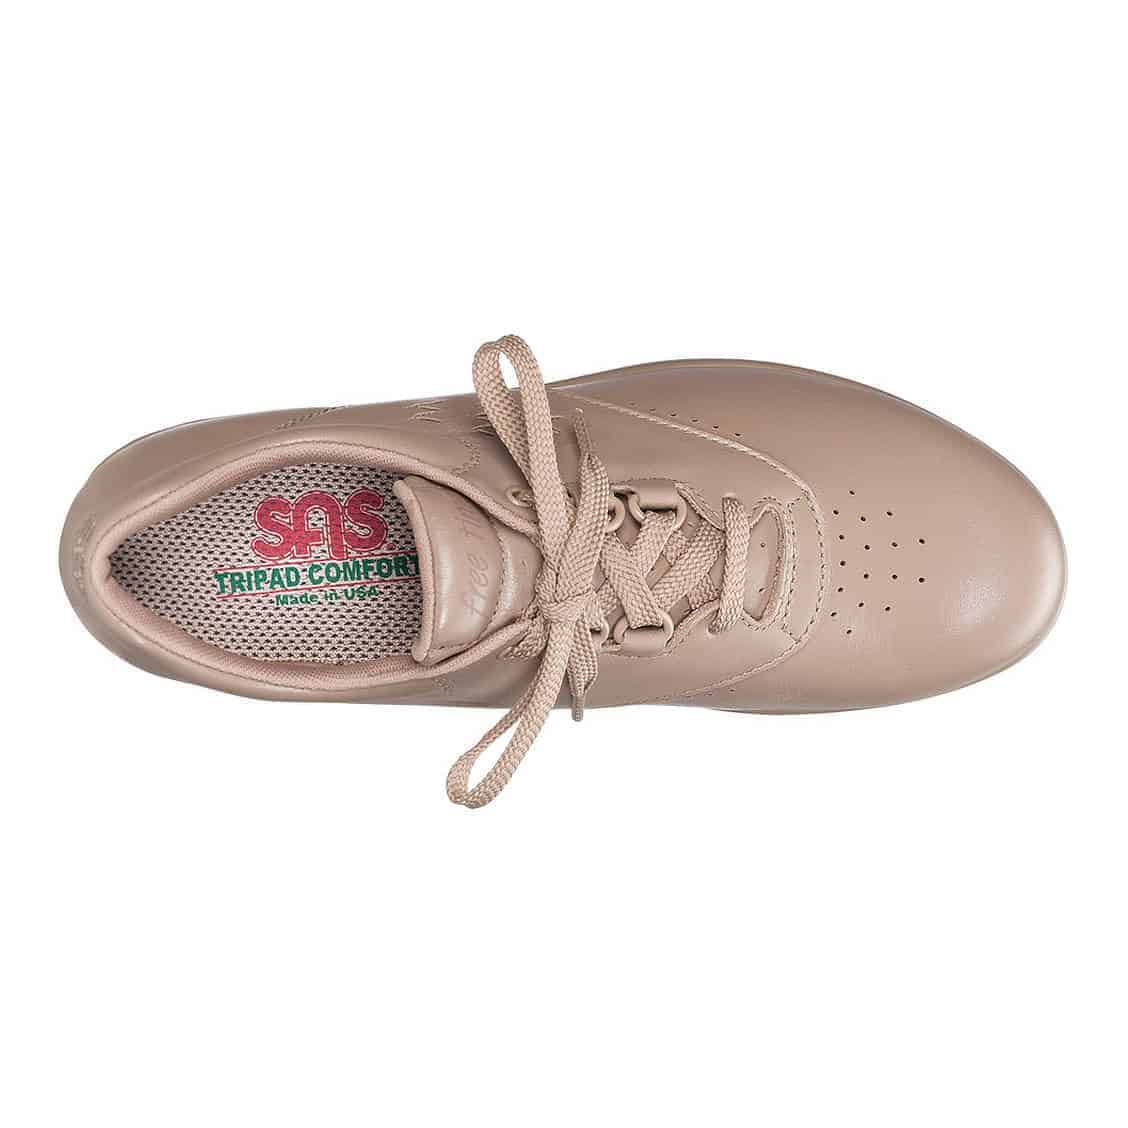 sas-womens-free-time-mocha-0083-015-4